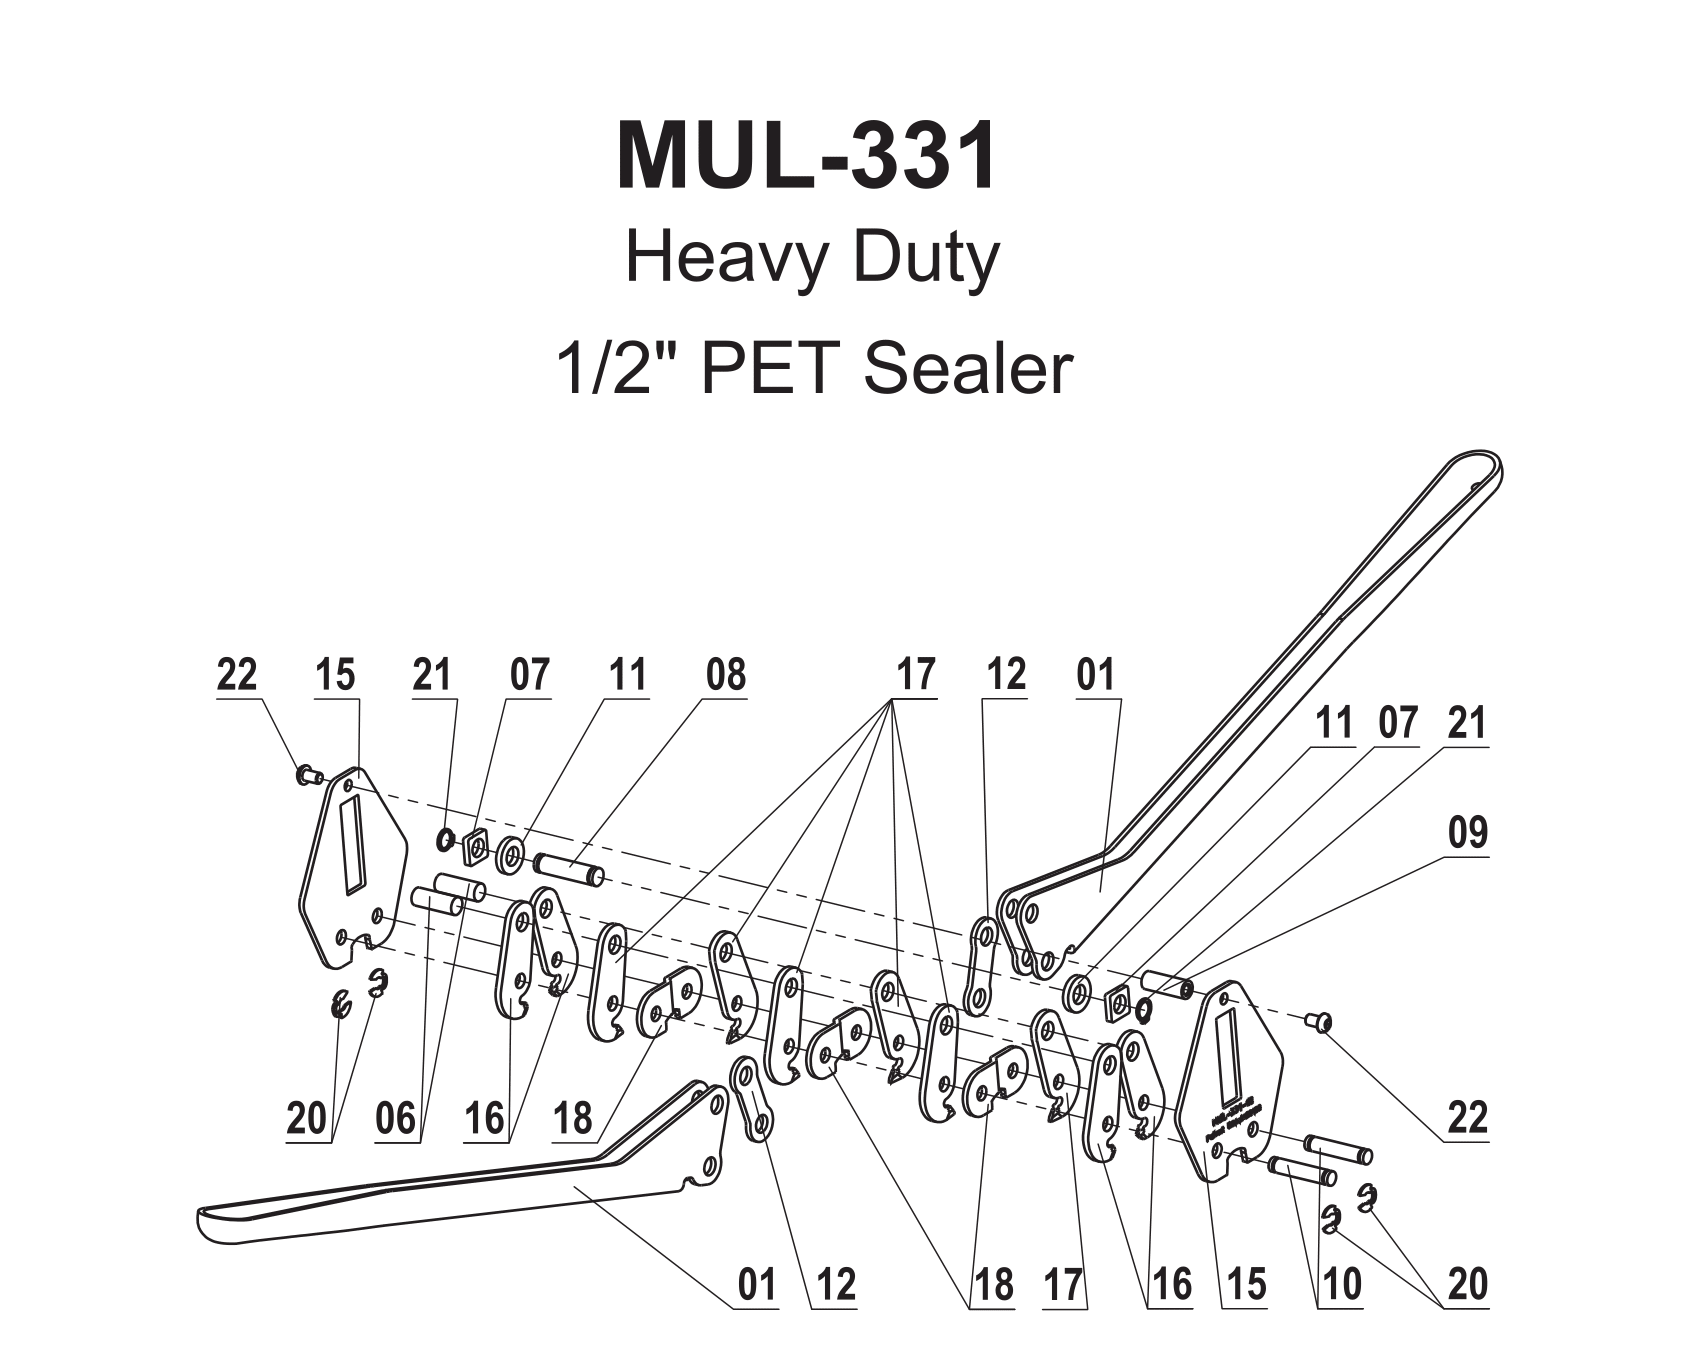 Parts For Mul 331 Heavy Duty Symmetrical Sealer For